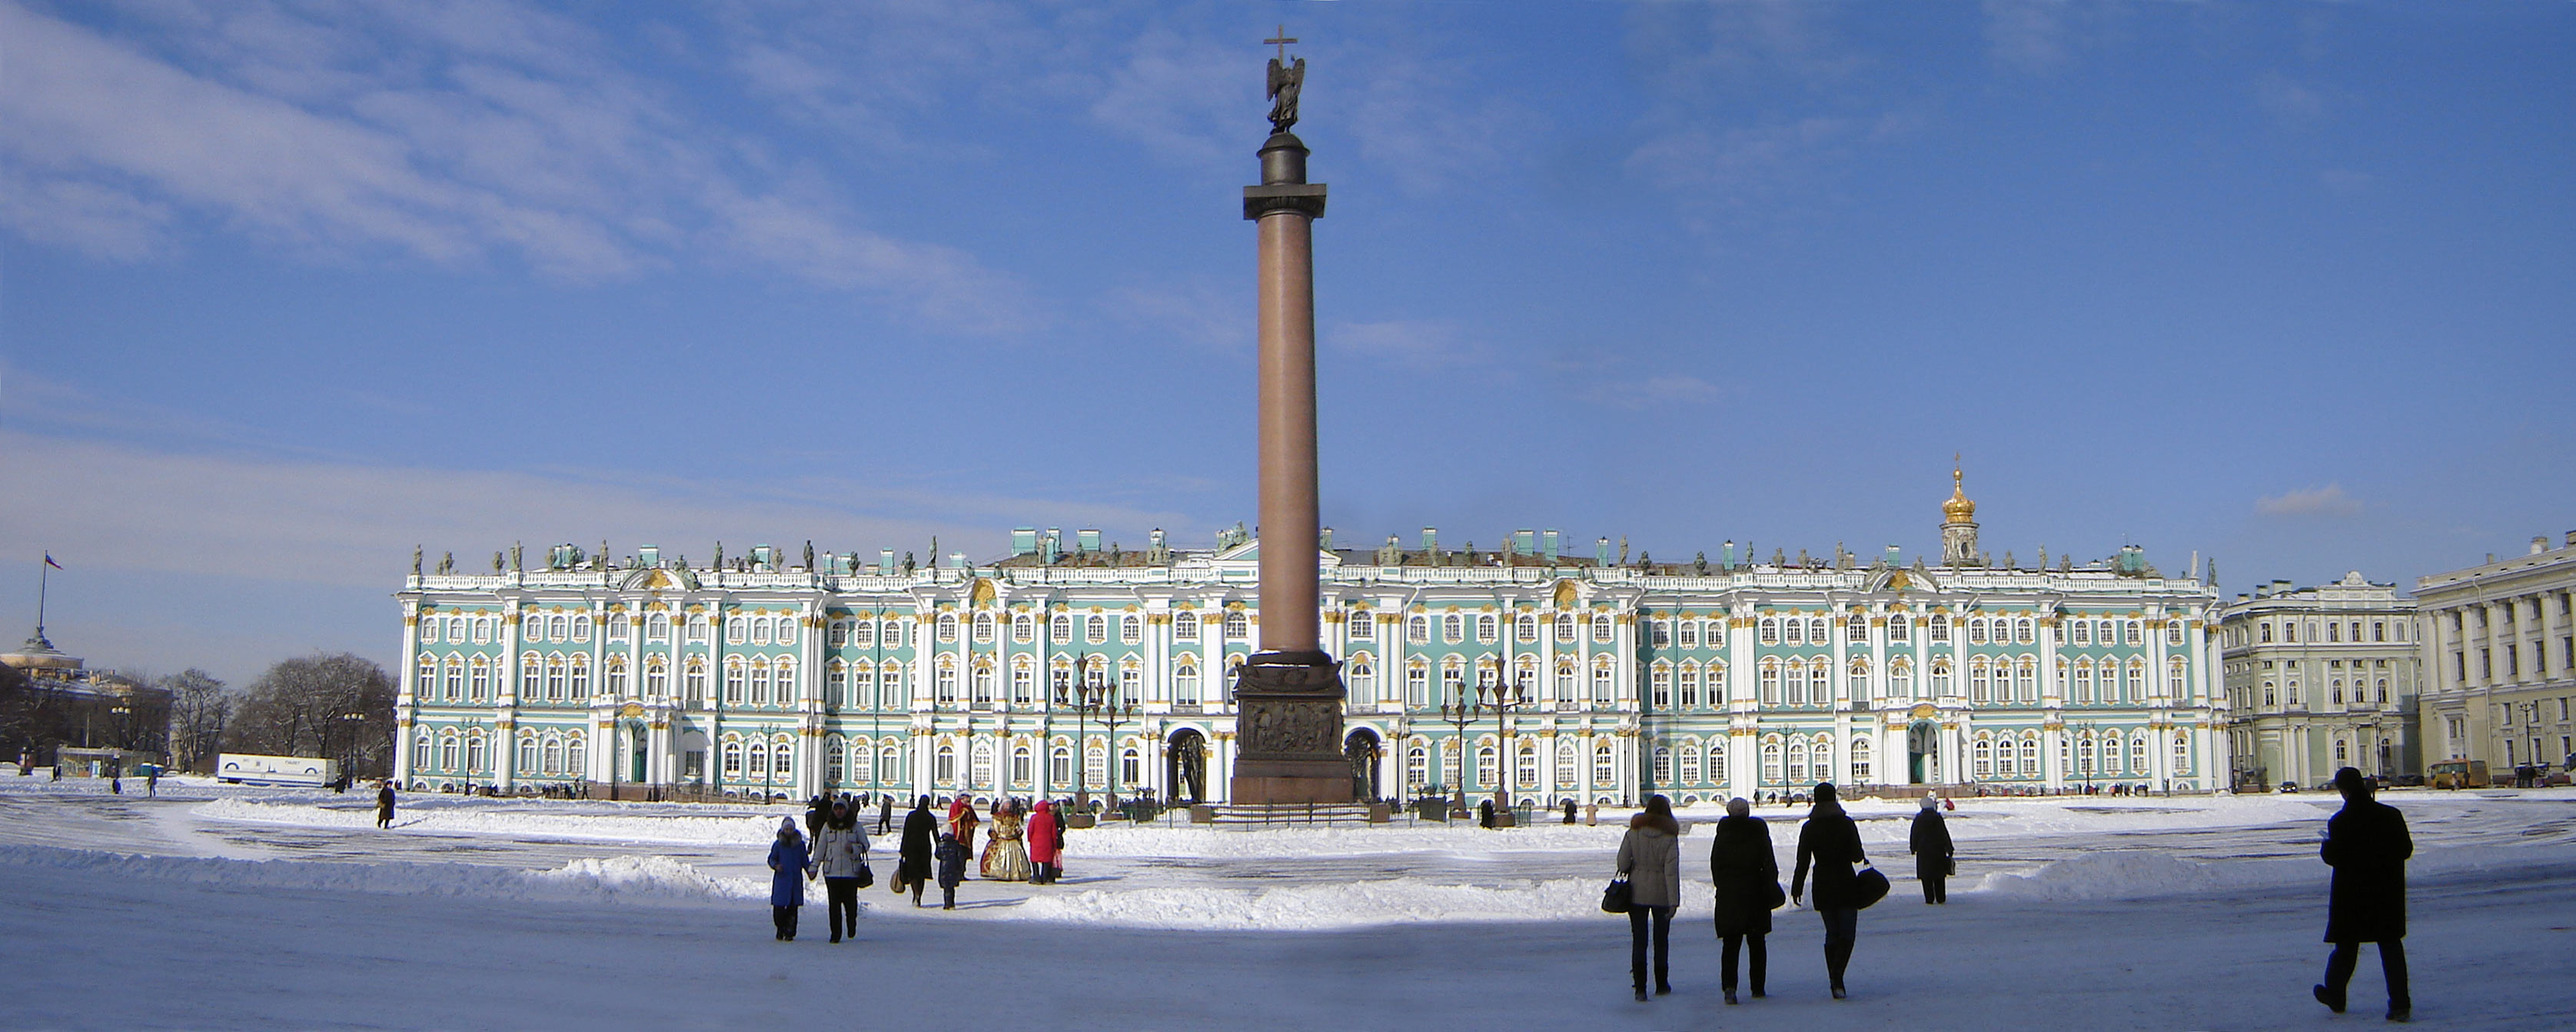 Зимний дворец  Picture of State Hermitage Museum and